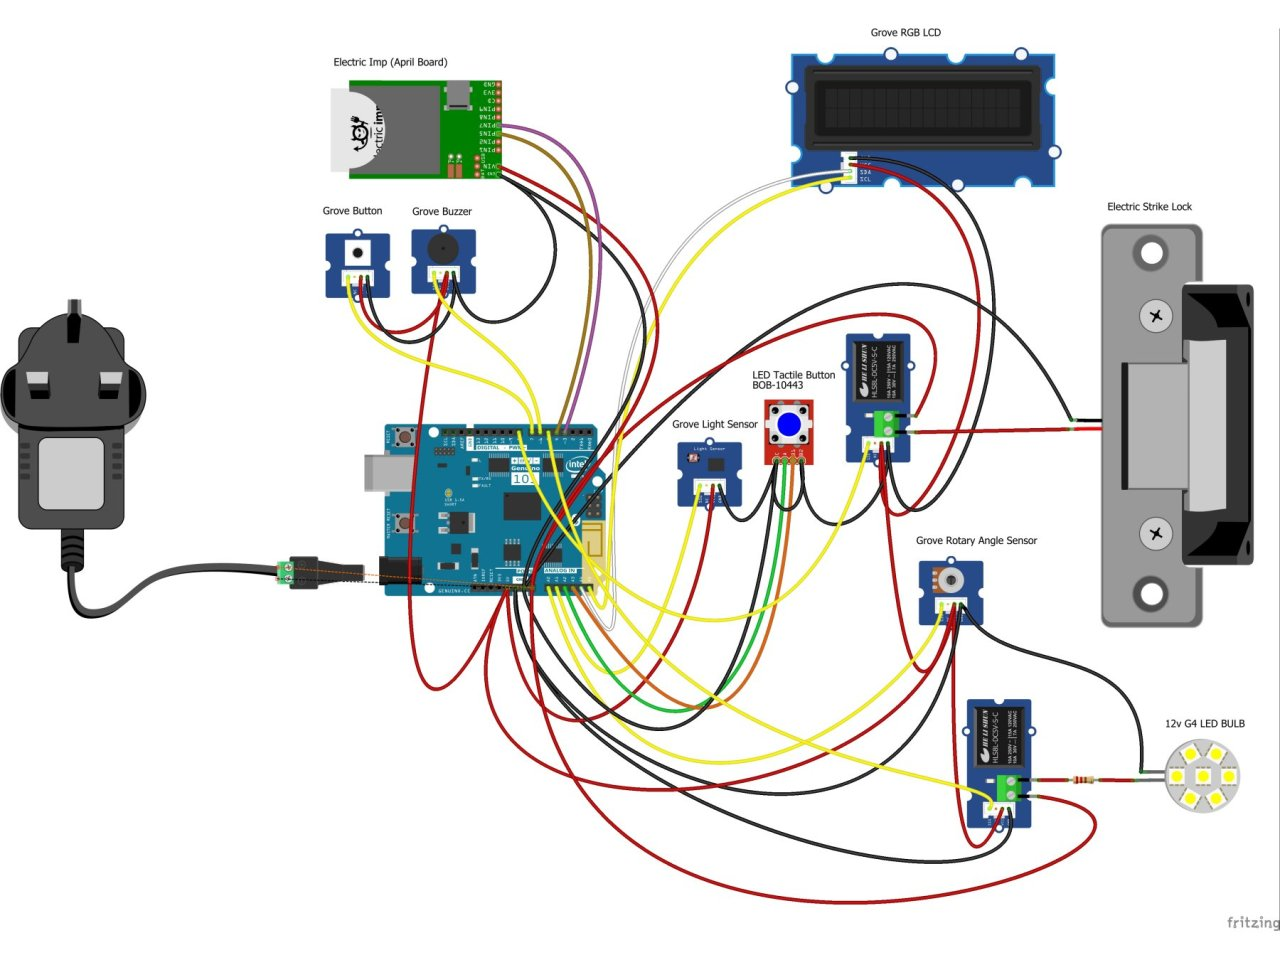 small resolution of electric strike lock wiring diagram